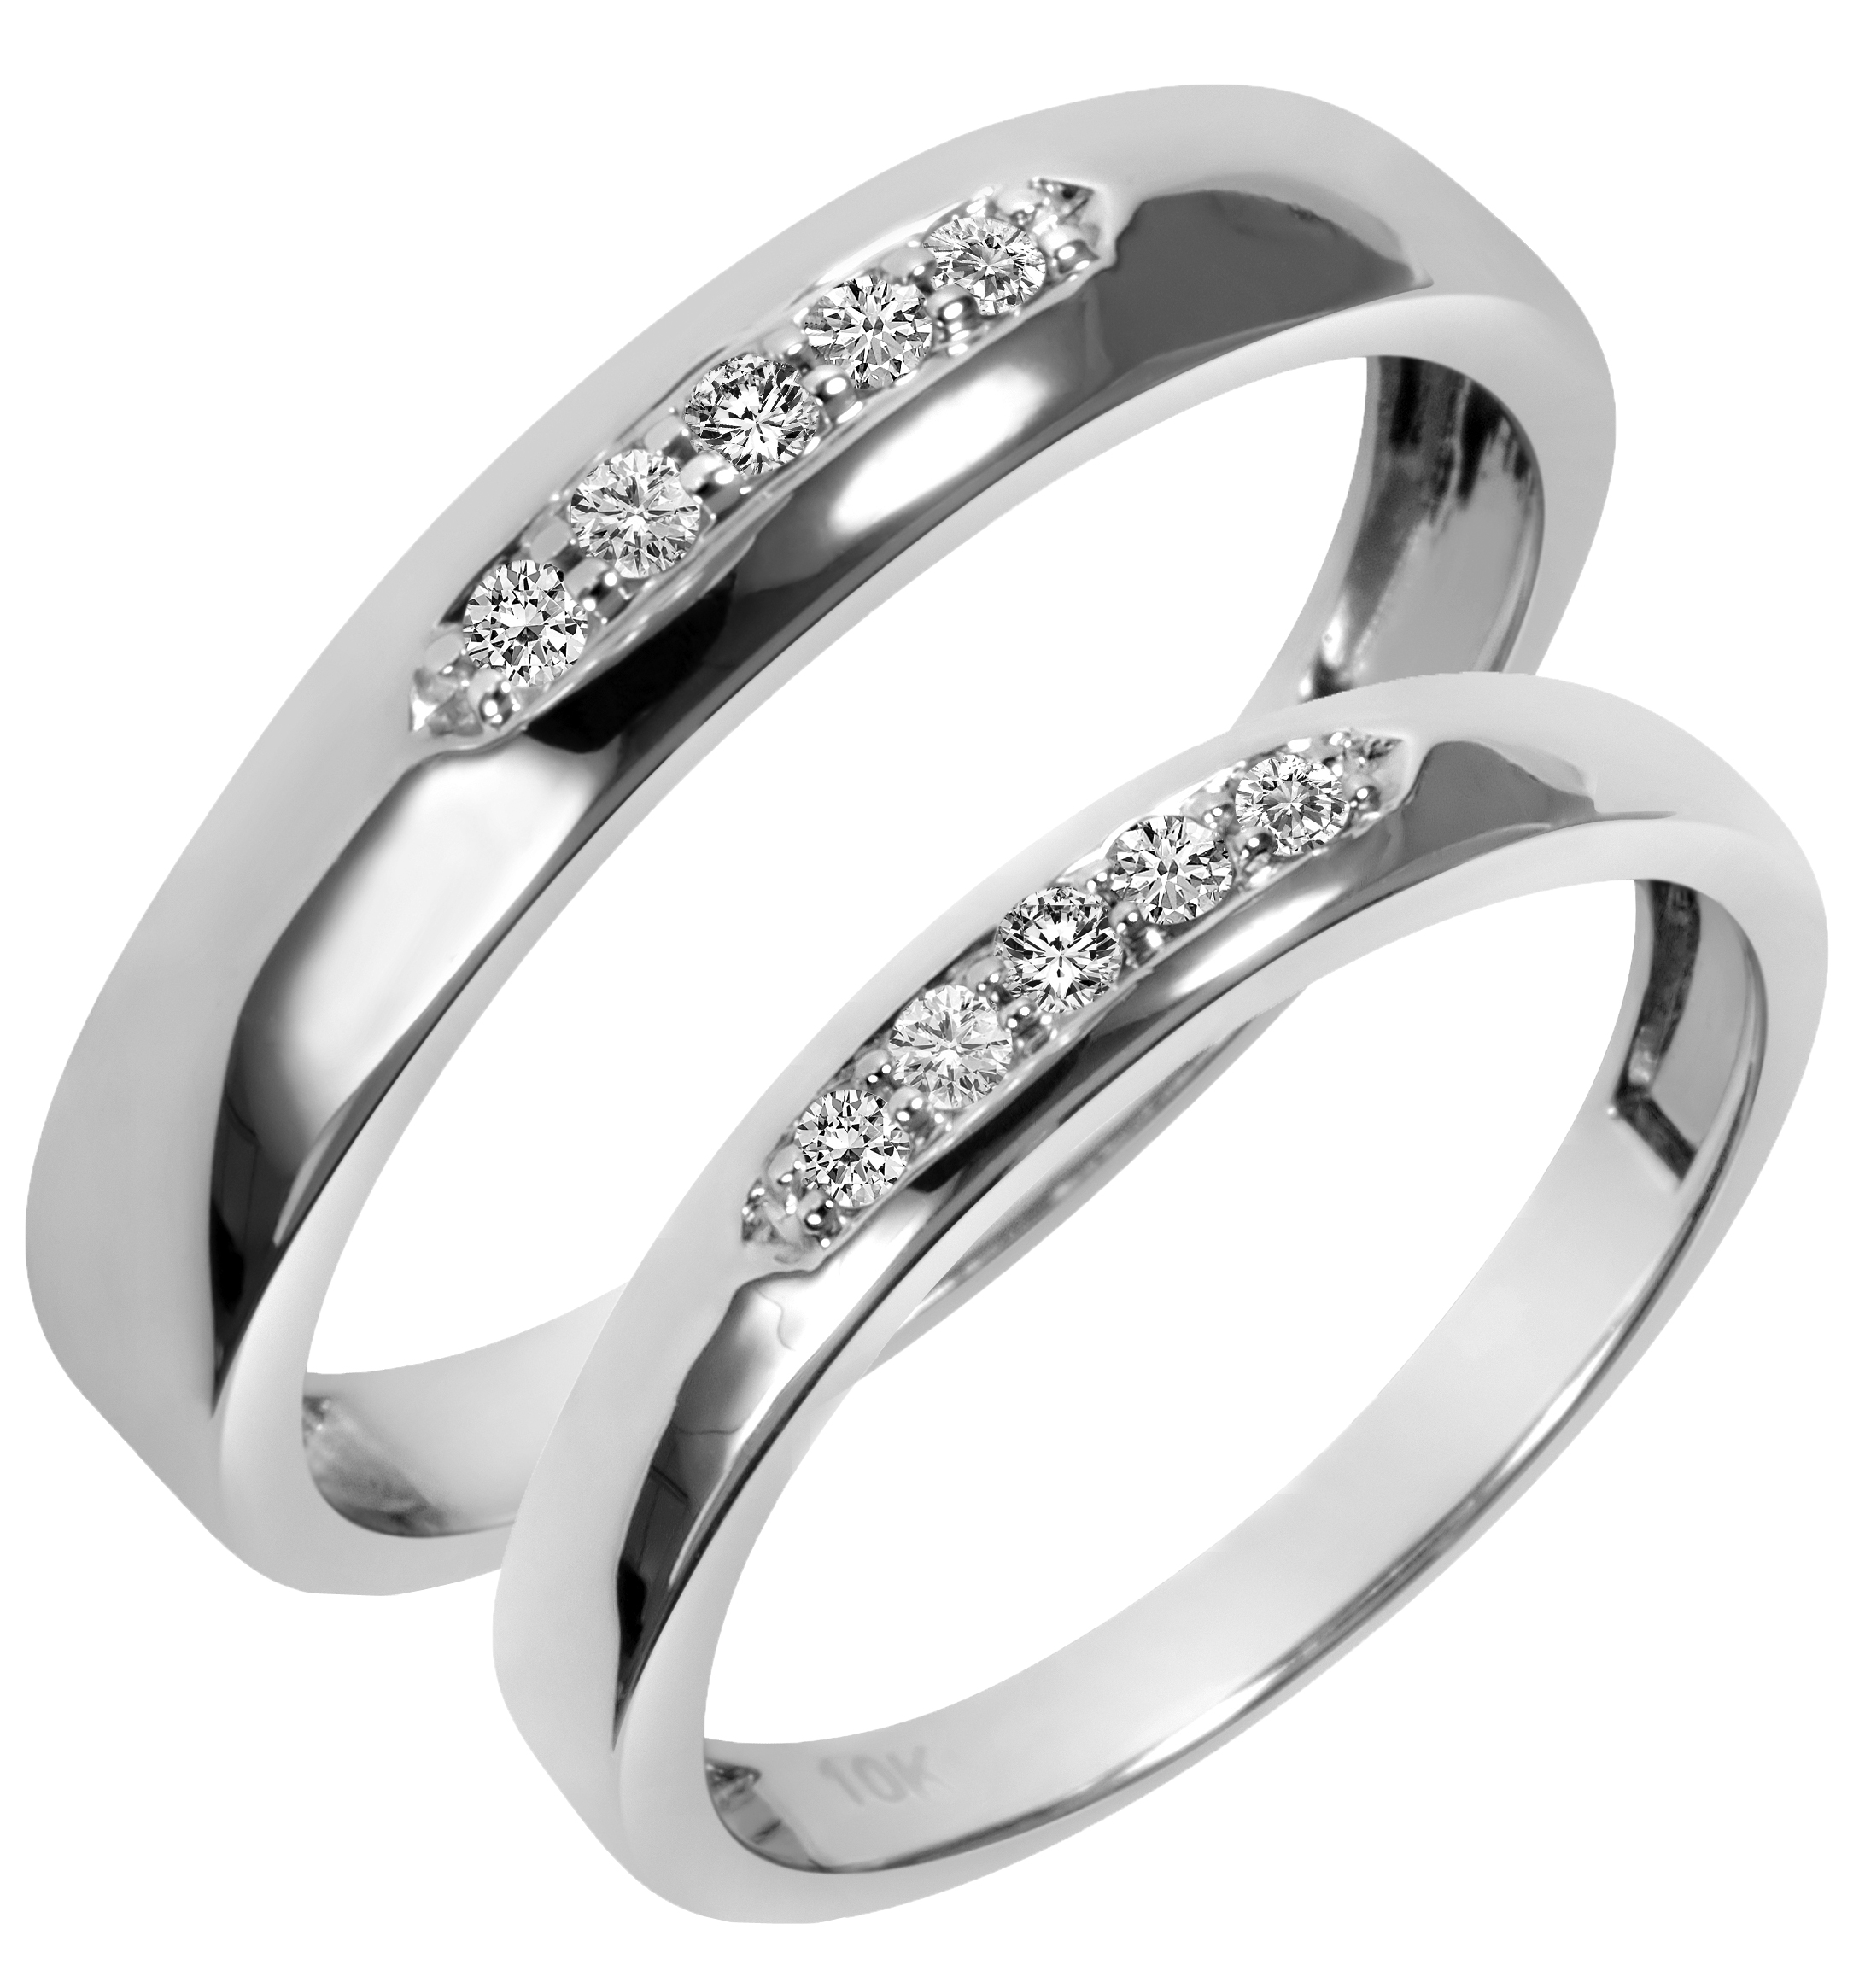 finding wedding bands matching wedding bands Unique Wedding Bands that Match